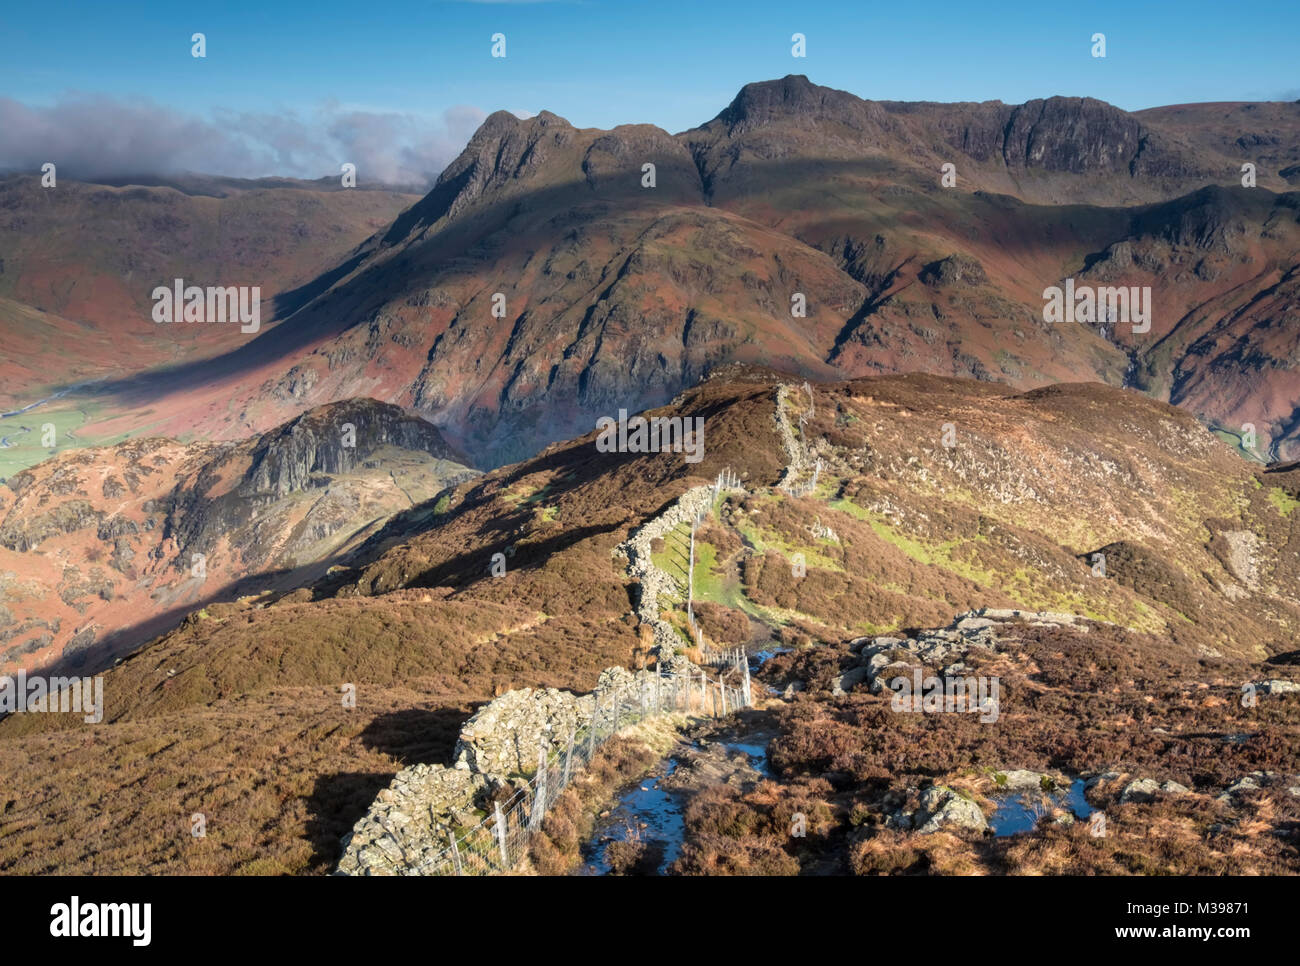 The Langdale Pikes and Side Pike from Lingmoor Fell, Great Langdale, Lake District National Park, Cumbria, England, - Stock Image